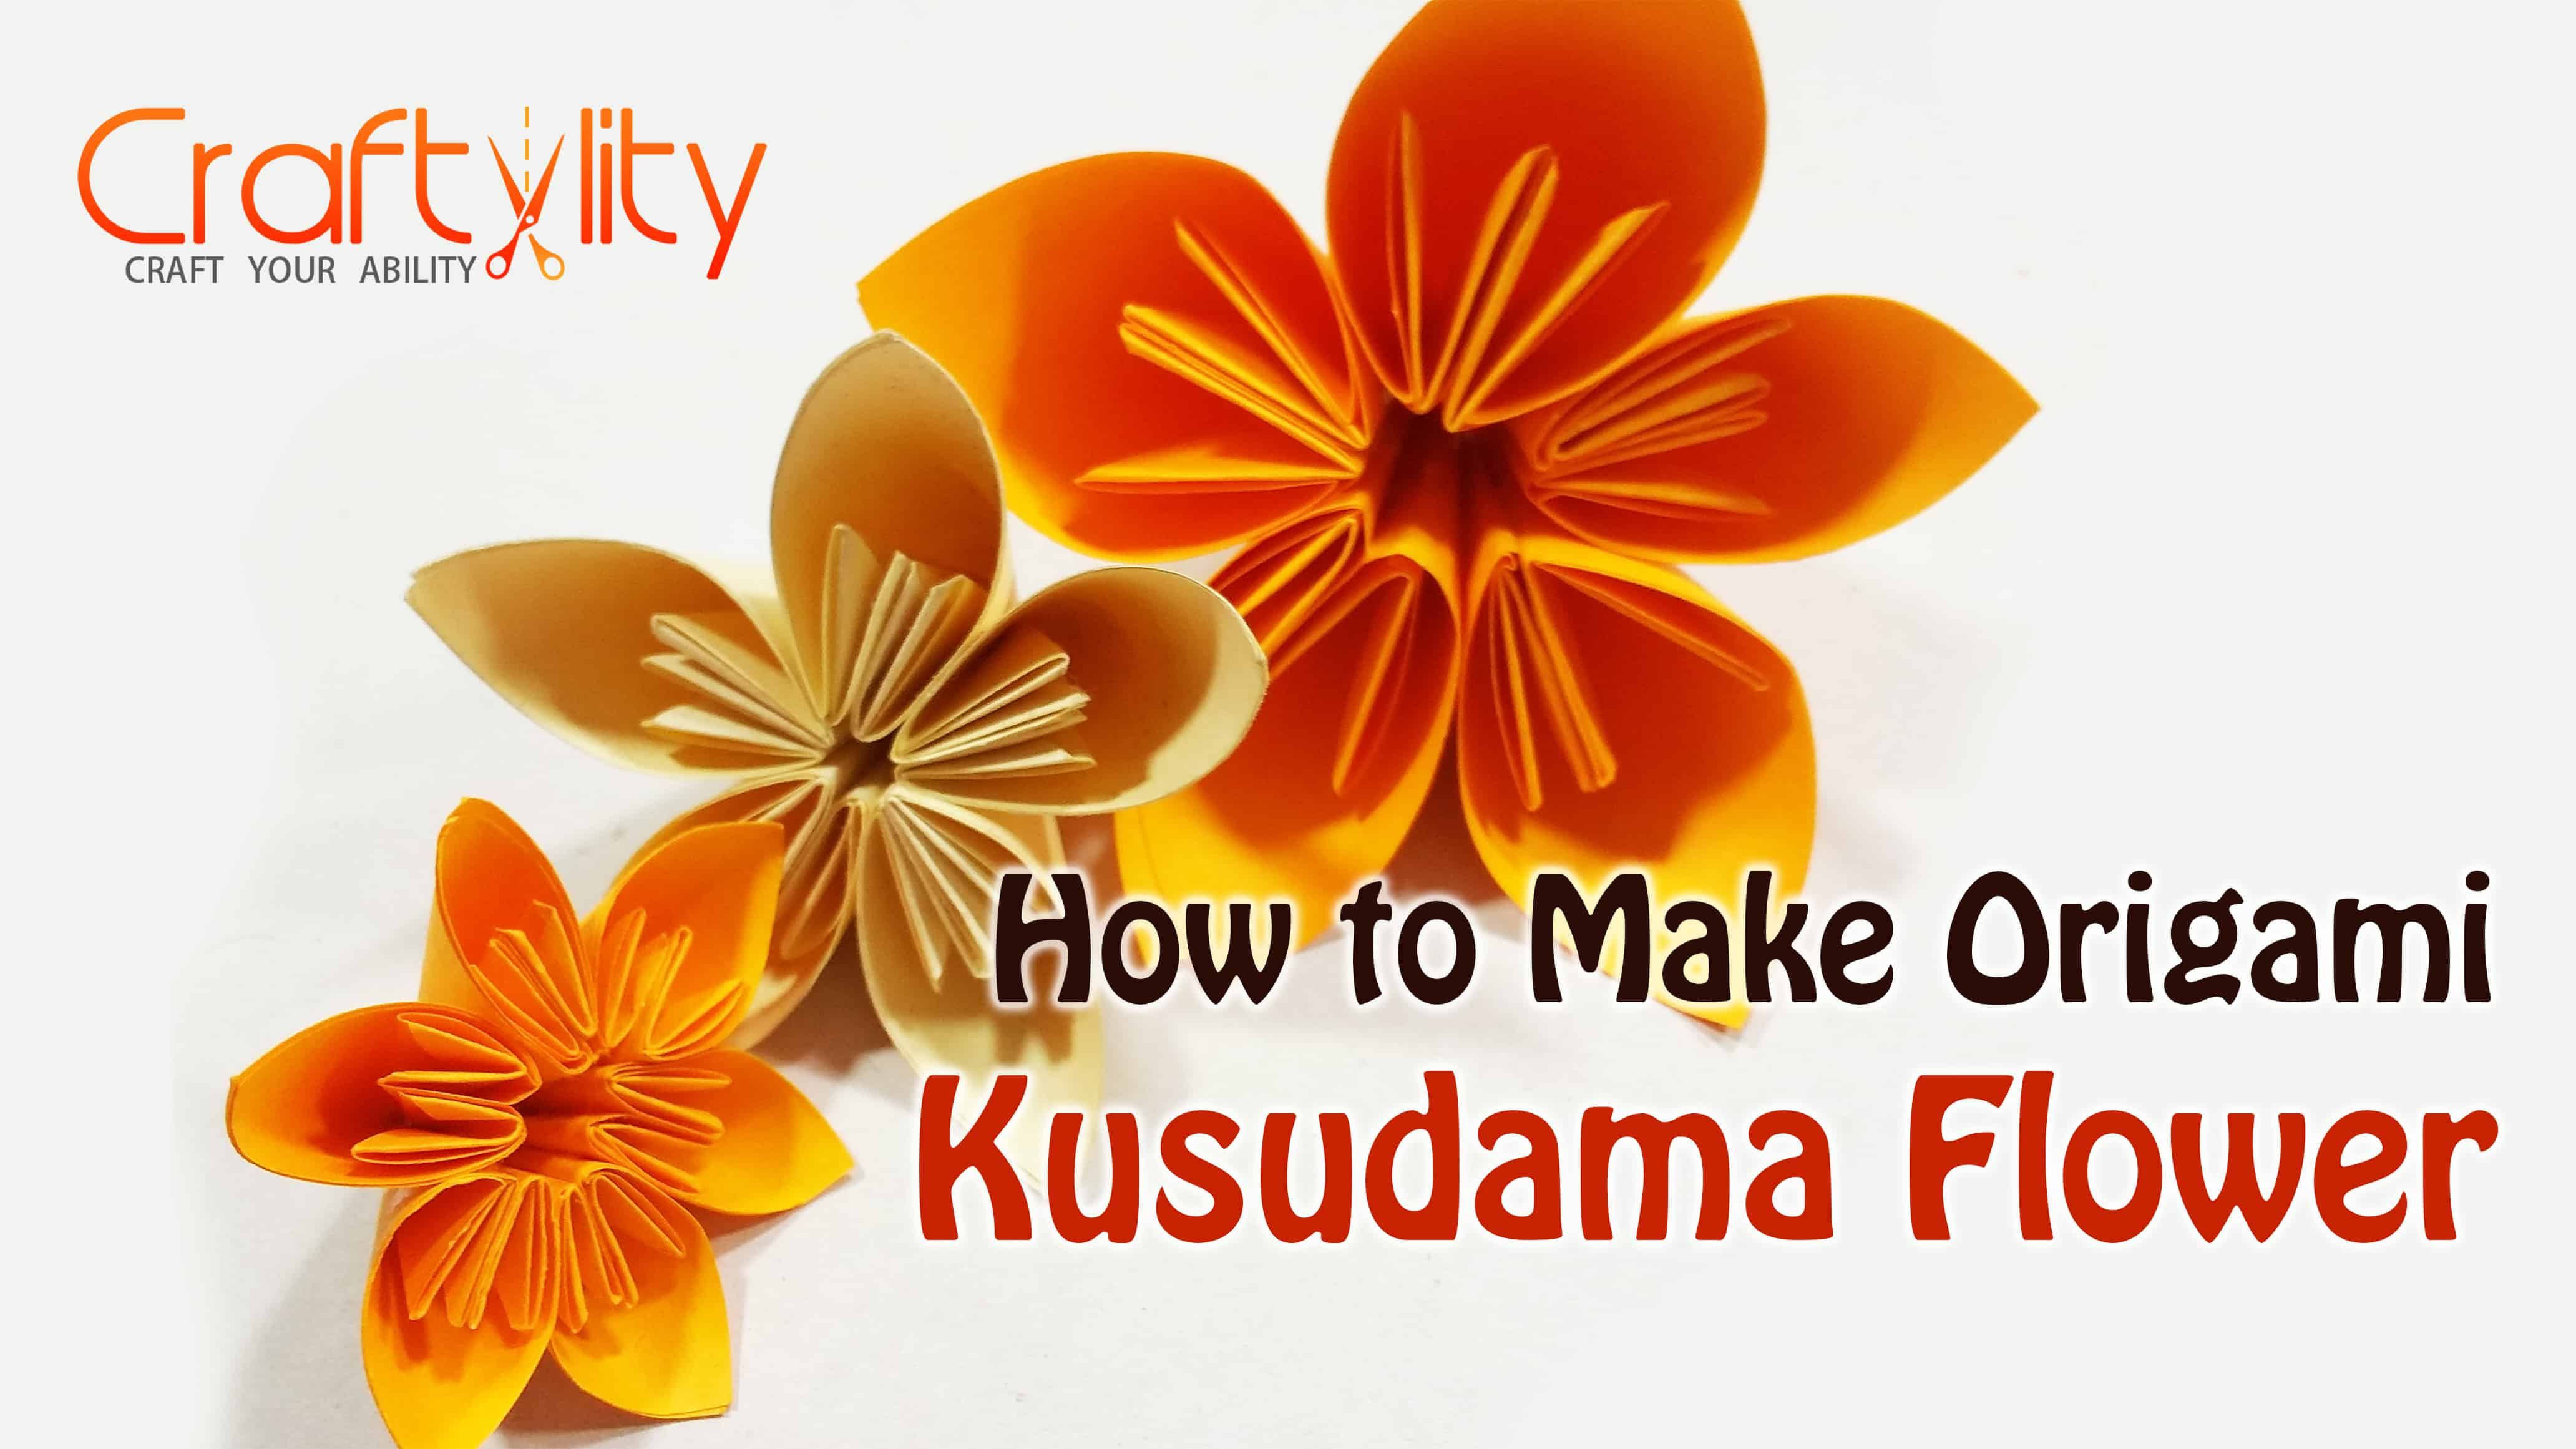 How To Make An Origami Kusudama Flower Craftylity